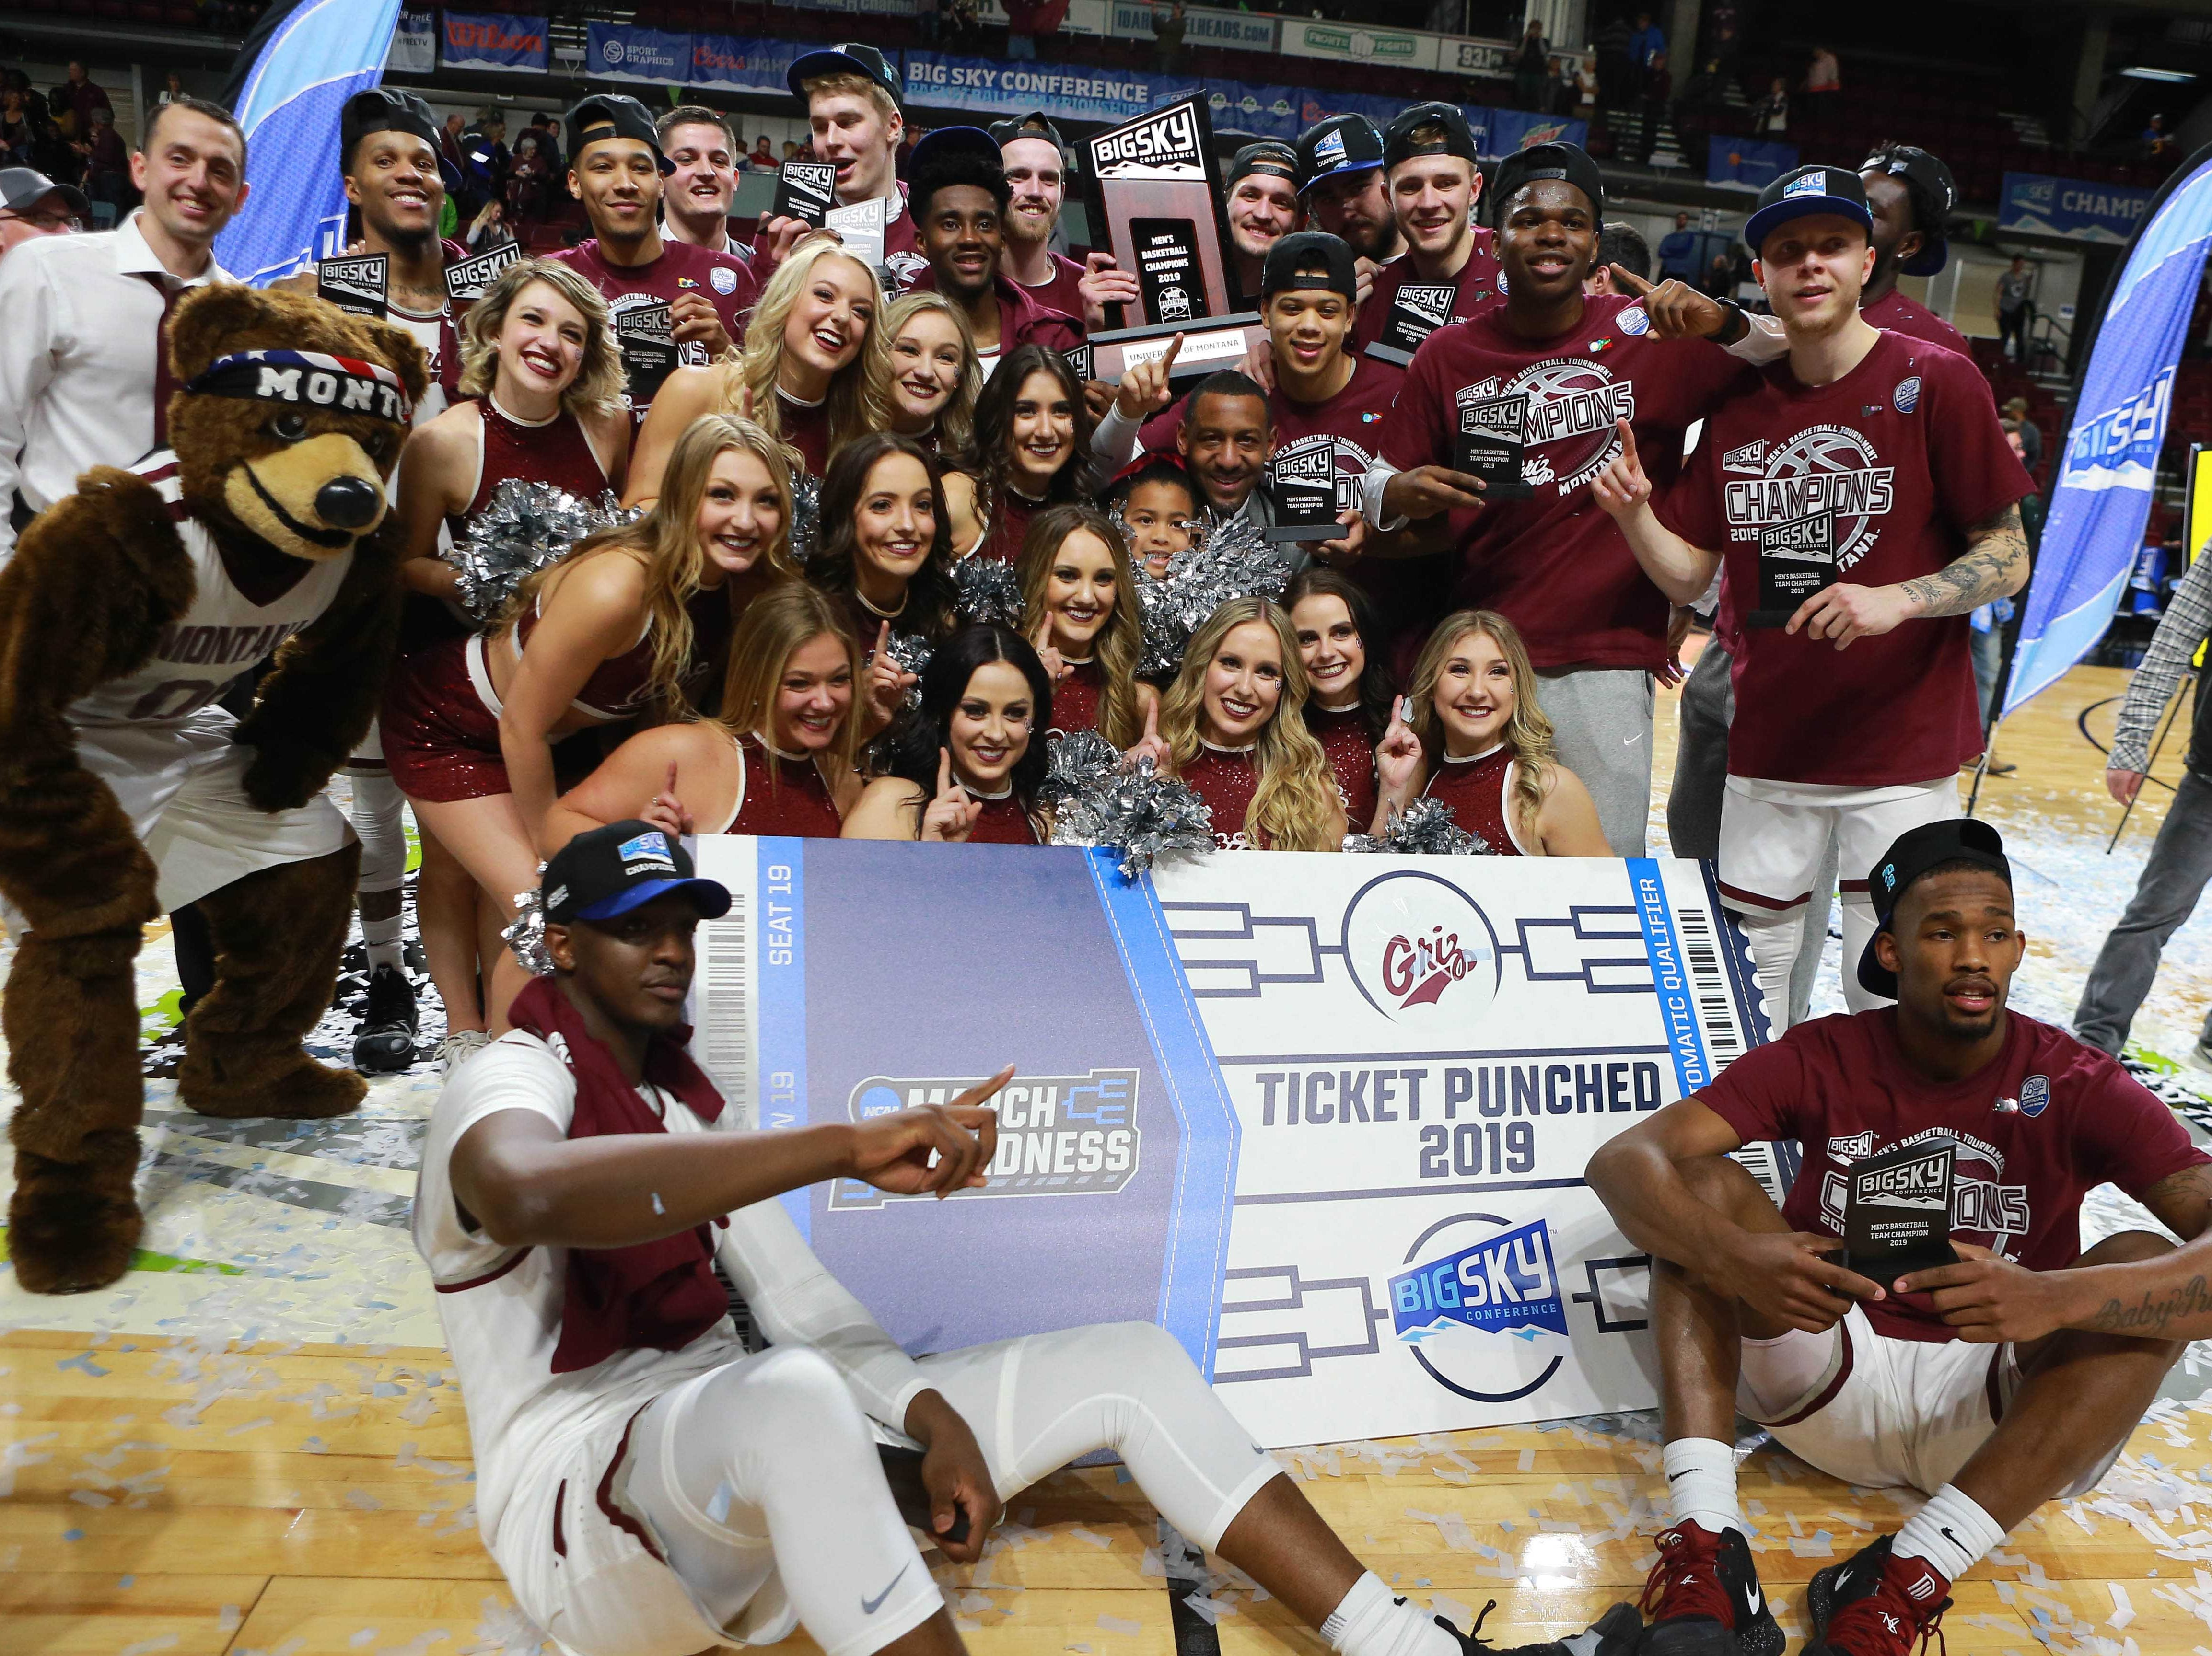 Montana (26-8), No. 15 seed in West, Big Sky Conference champion